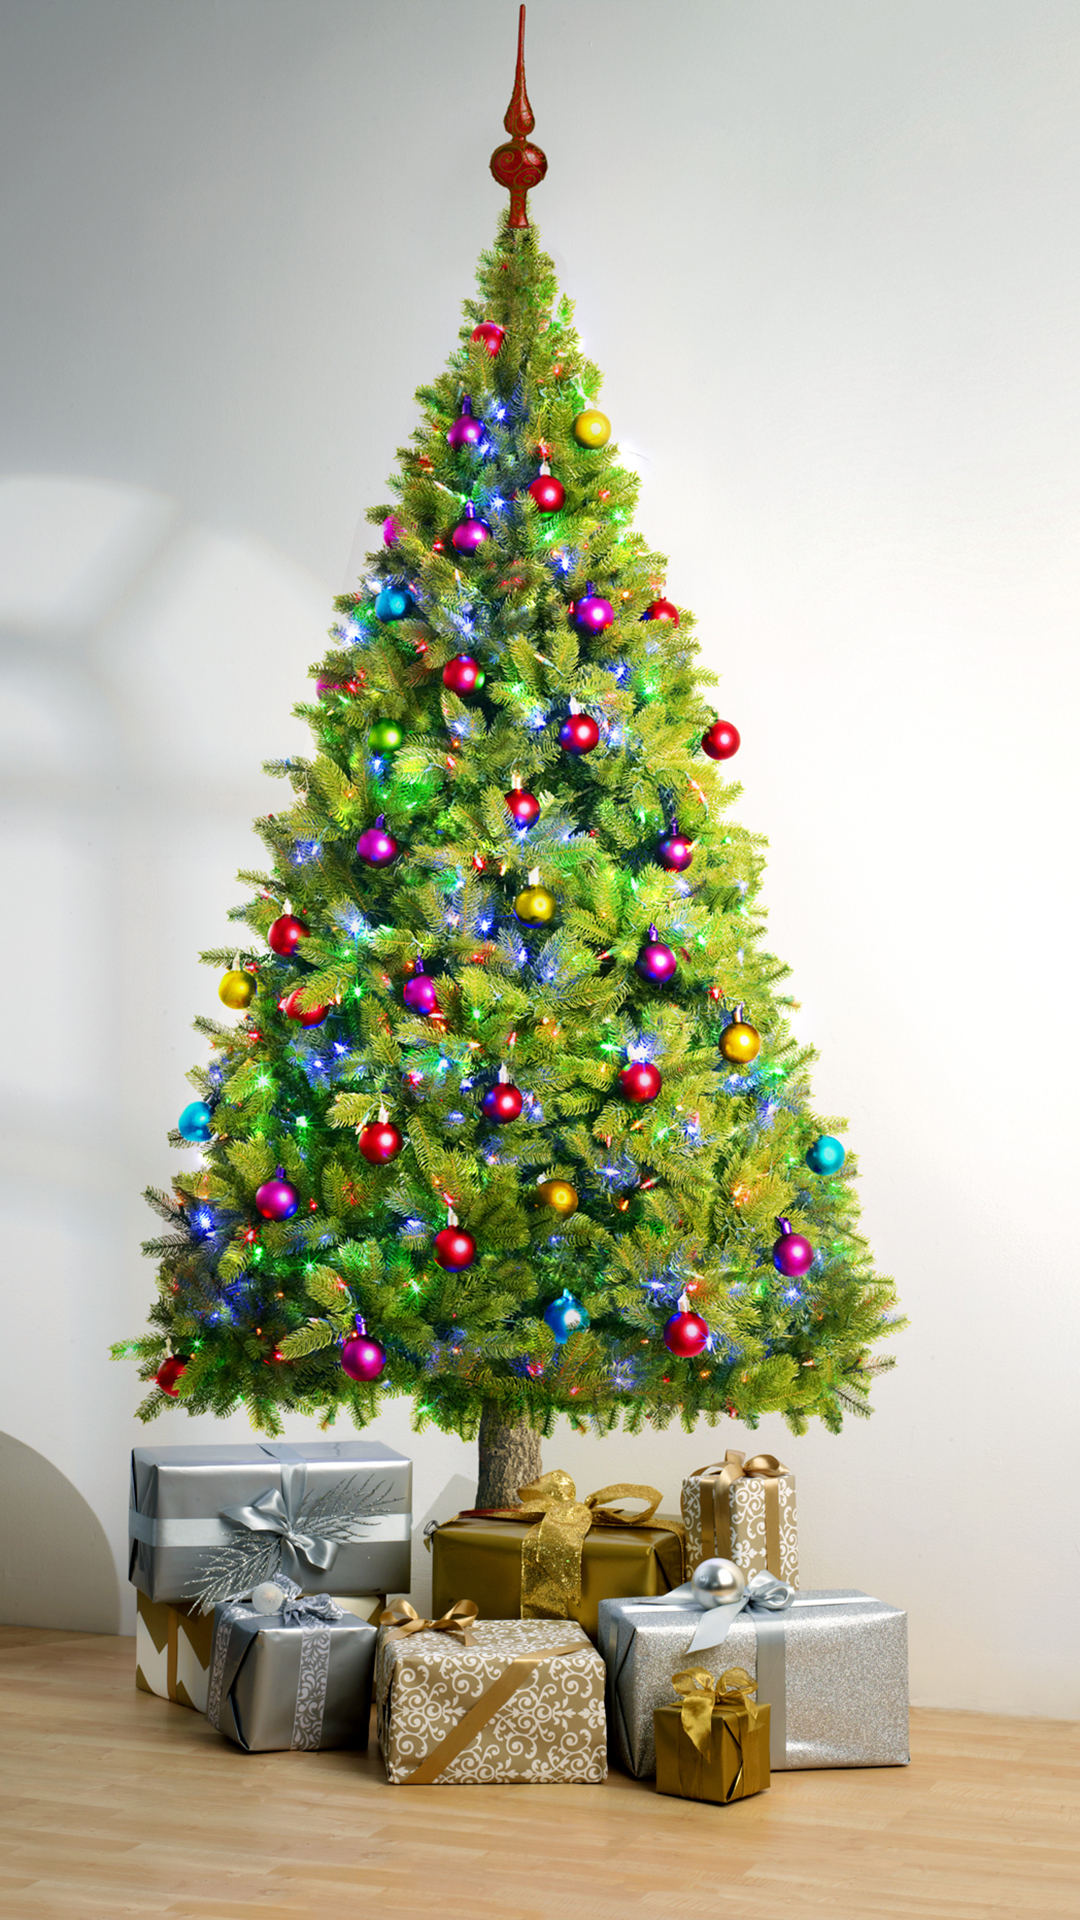 Christmas Tree Best Htc One Wallpapers Free And Easy To Download